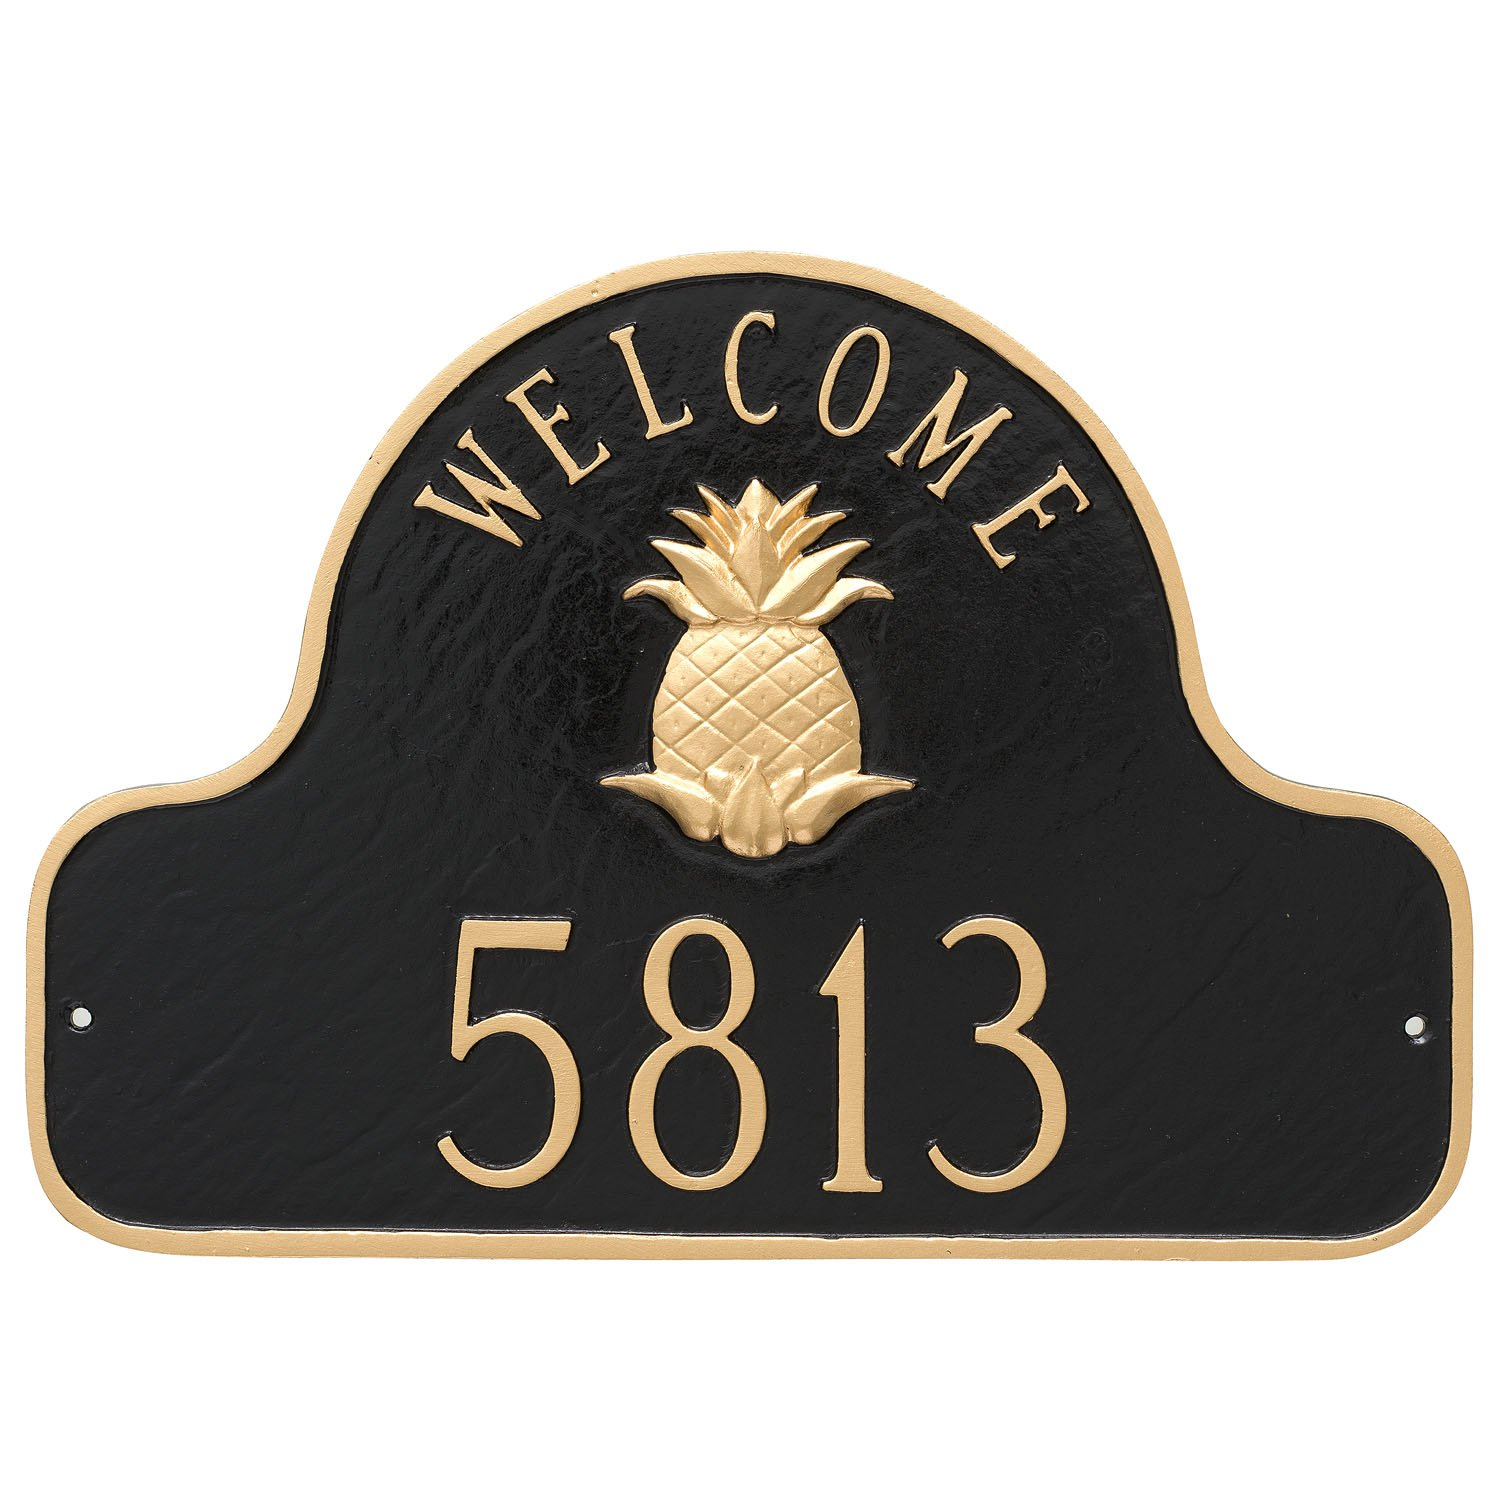 Montague Metal Pineapple Welcome Arch Address Sign Plaque, 11'' x 16'', Black/Gold